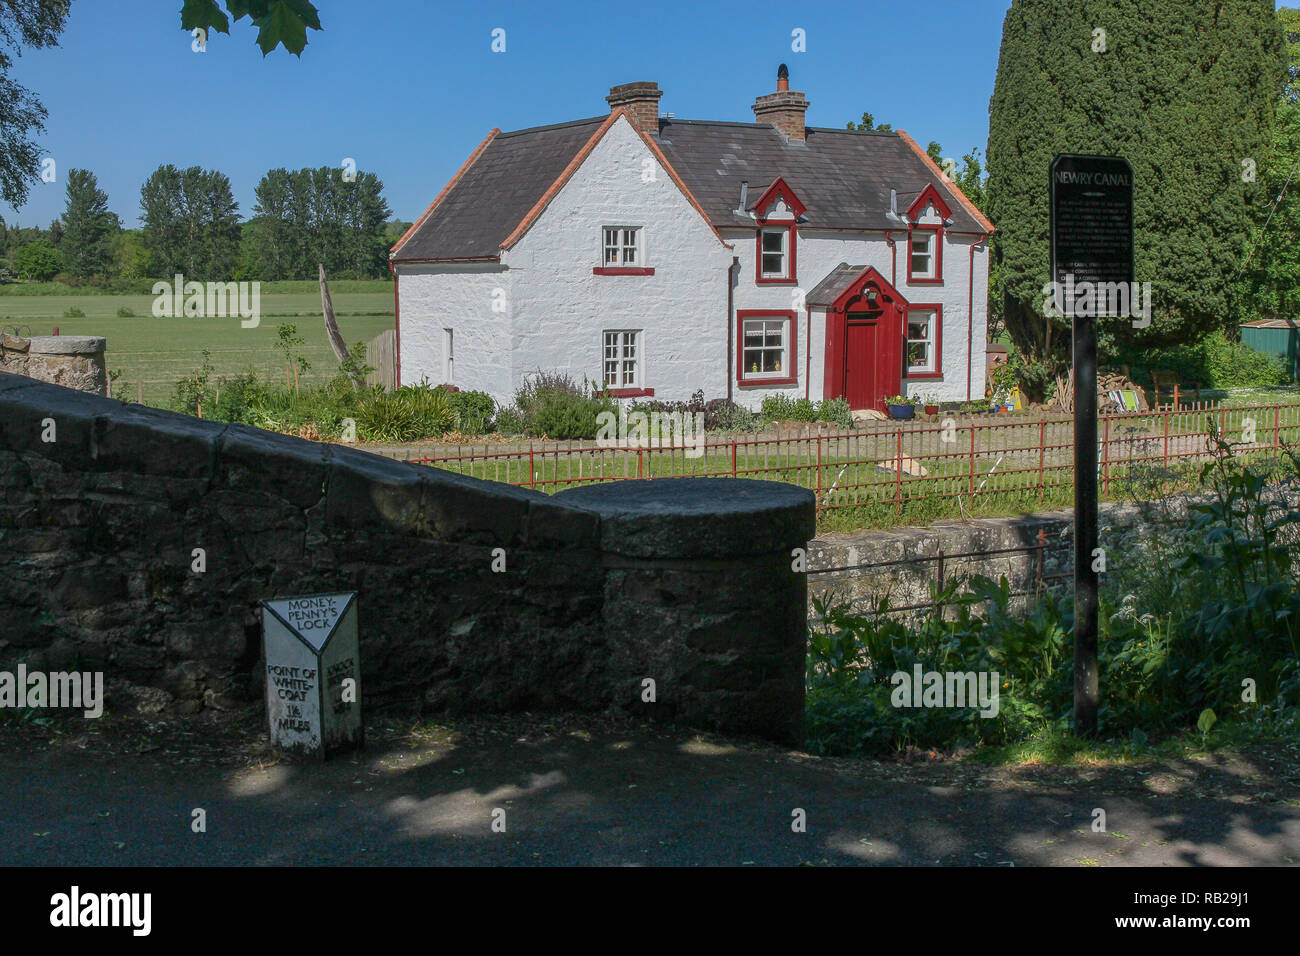 Moneypenny's. The Moneypenny lock and restored lock house on the Newry Canal, - Stock Image